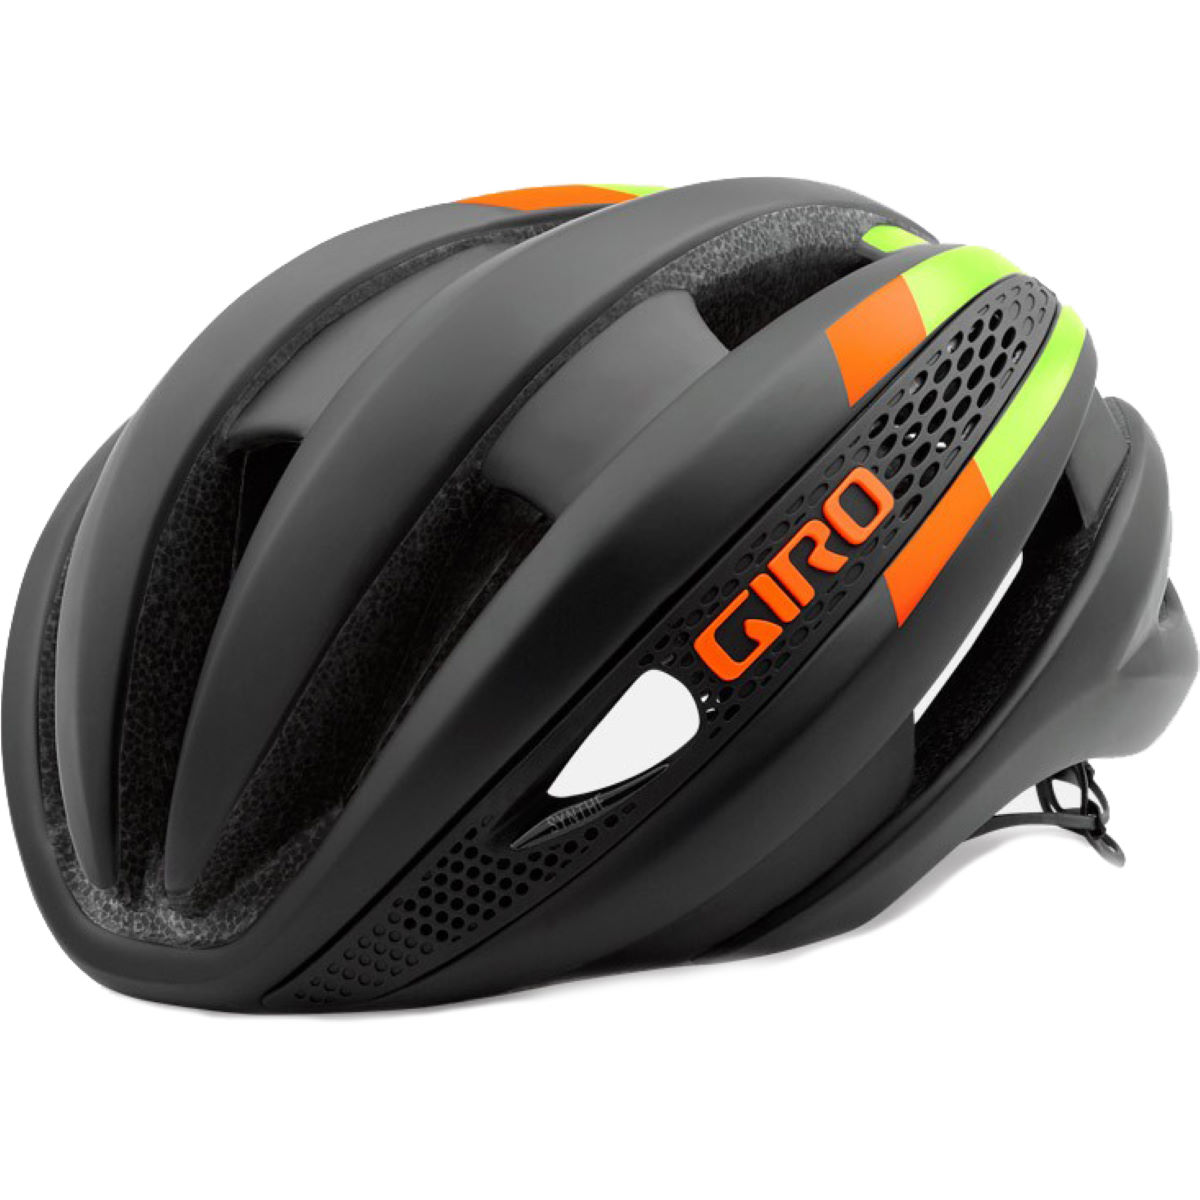 Casque Giro Synthe - Medium 55-59cm Noir/Jaune fluo Casques de route